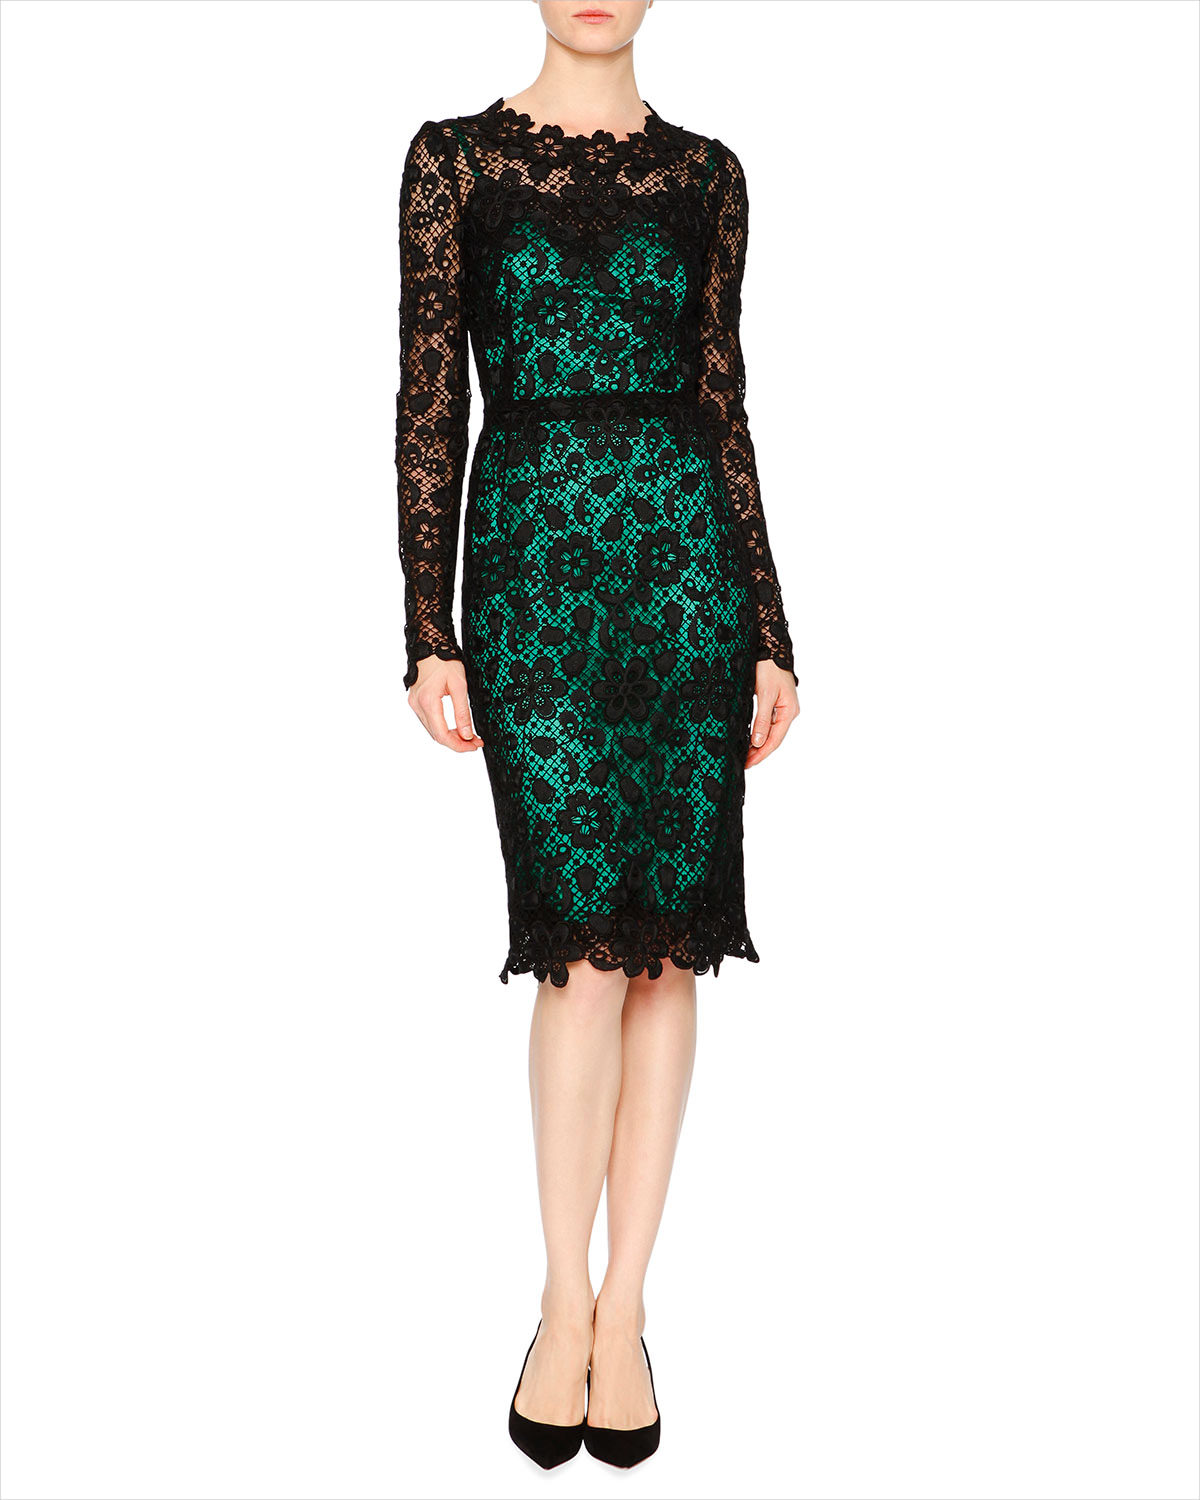 Dolce and Gabbana Lace Sleeve Dress